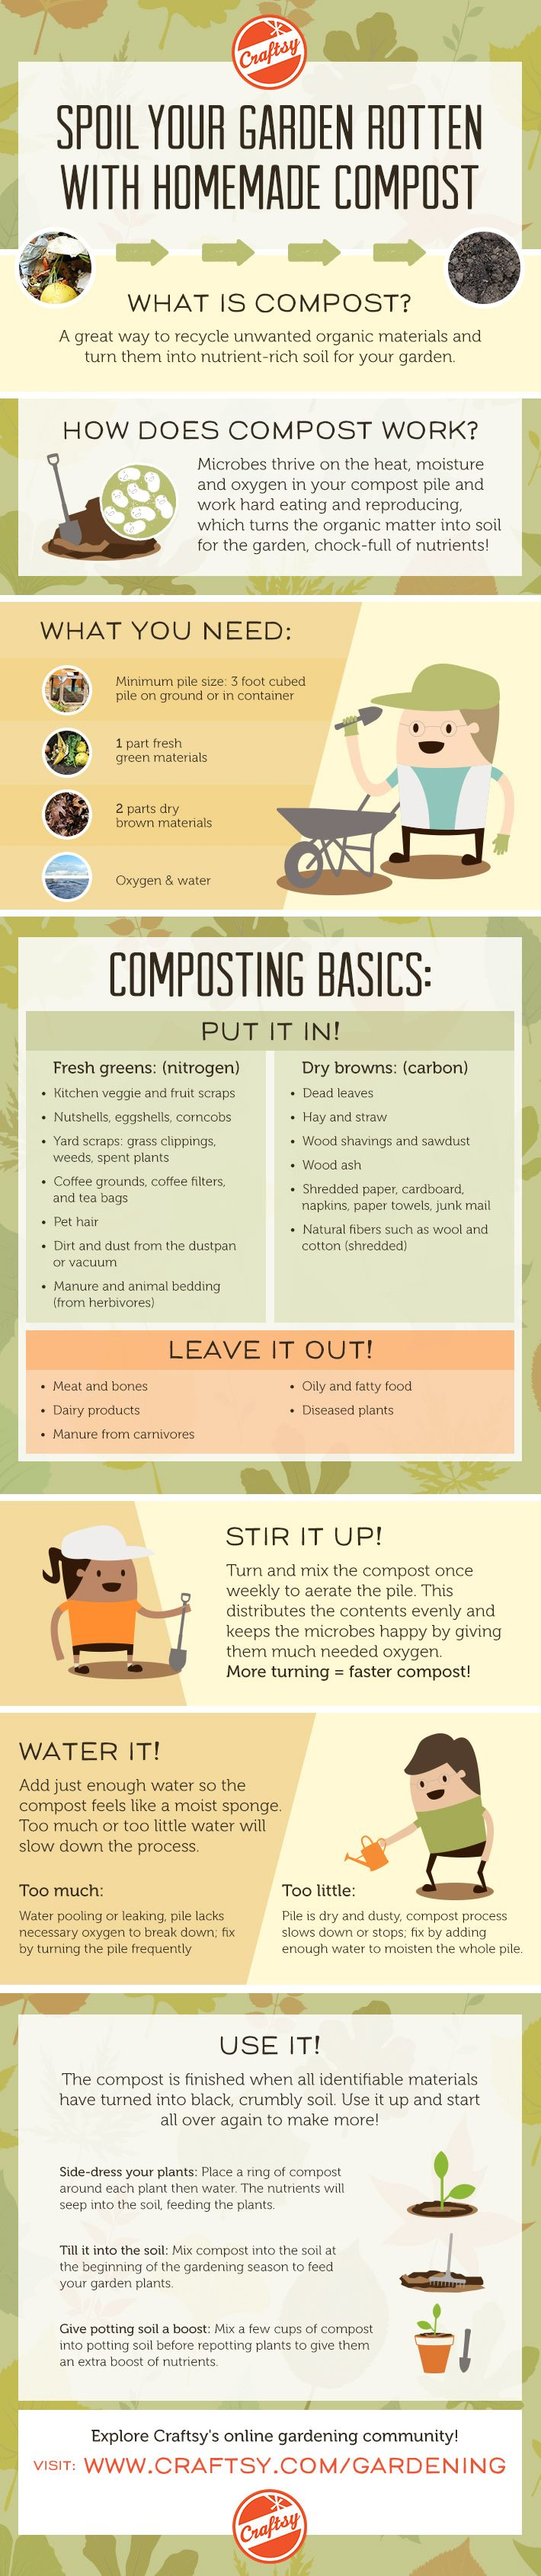 Spoil Your Garden Rotten With Homemade Compost [Infographic]